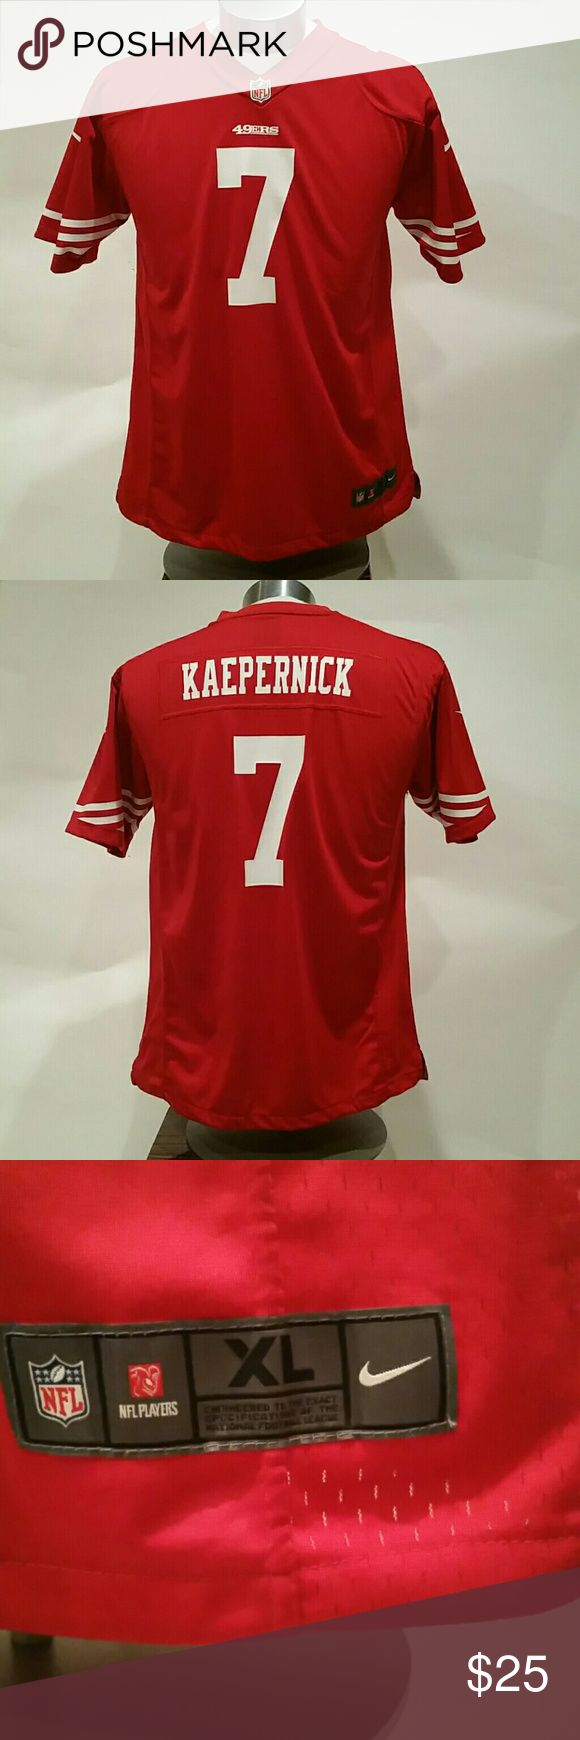 49'er Youth Football Jersey Youth size XL/Extra Large San Francisco 49'ers NFL Nike Football Jersey. EUC. Could fit womens size M/Med or men's Size S/Small. Only worn once by my daughter to watch a football game! Youth size XL =18/20. NFL /Nike Shirts & Tops